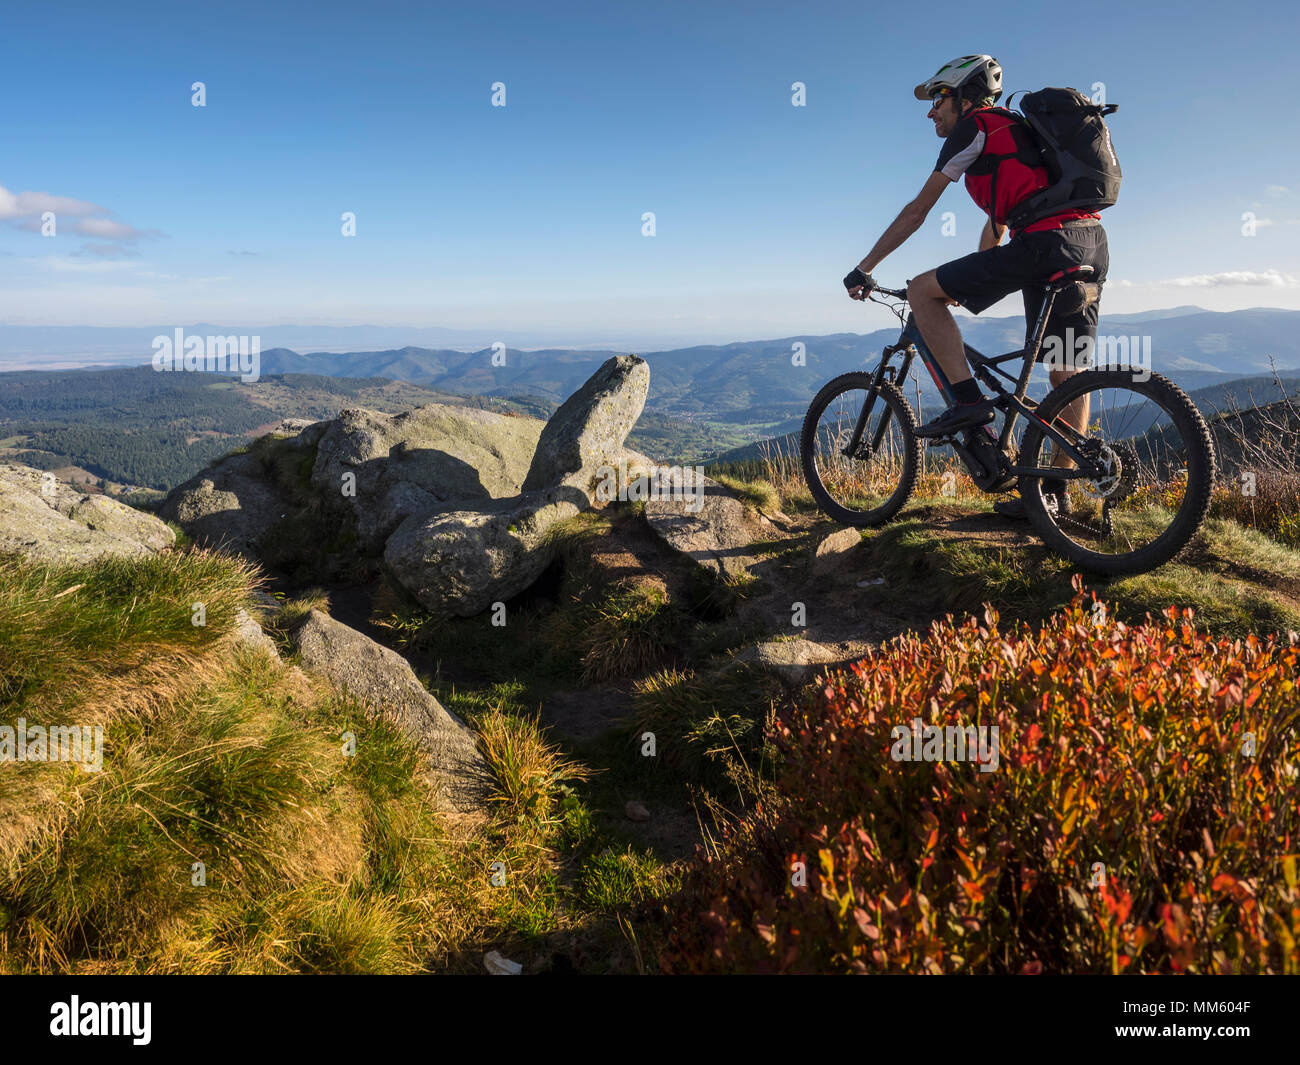 Mountain biker cycling on single trail on Ringelbuhlkopf, Alsace, France - Stock Image